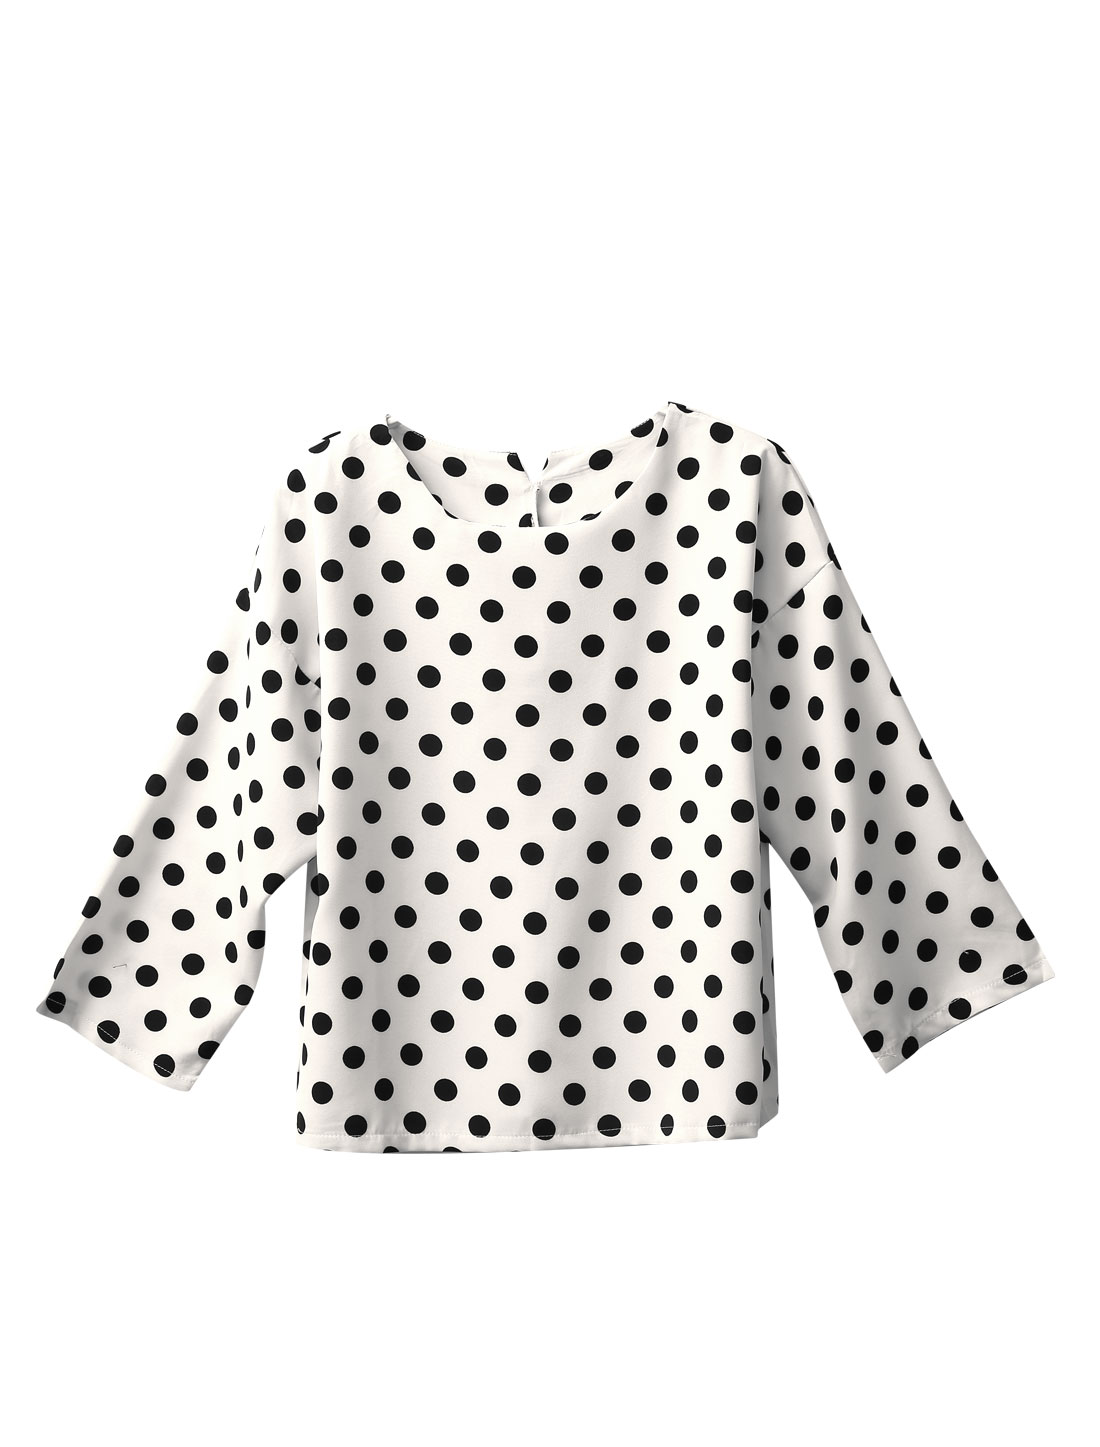 Ladies Polka Dots Prints 3/4 Sleeves Casual Shirt White S